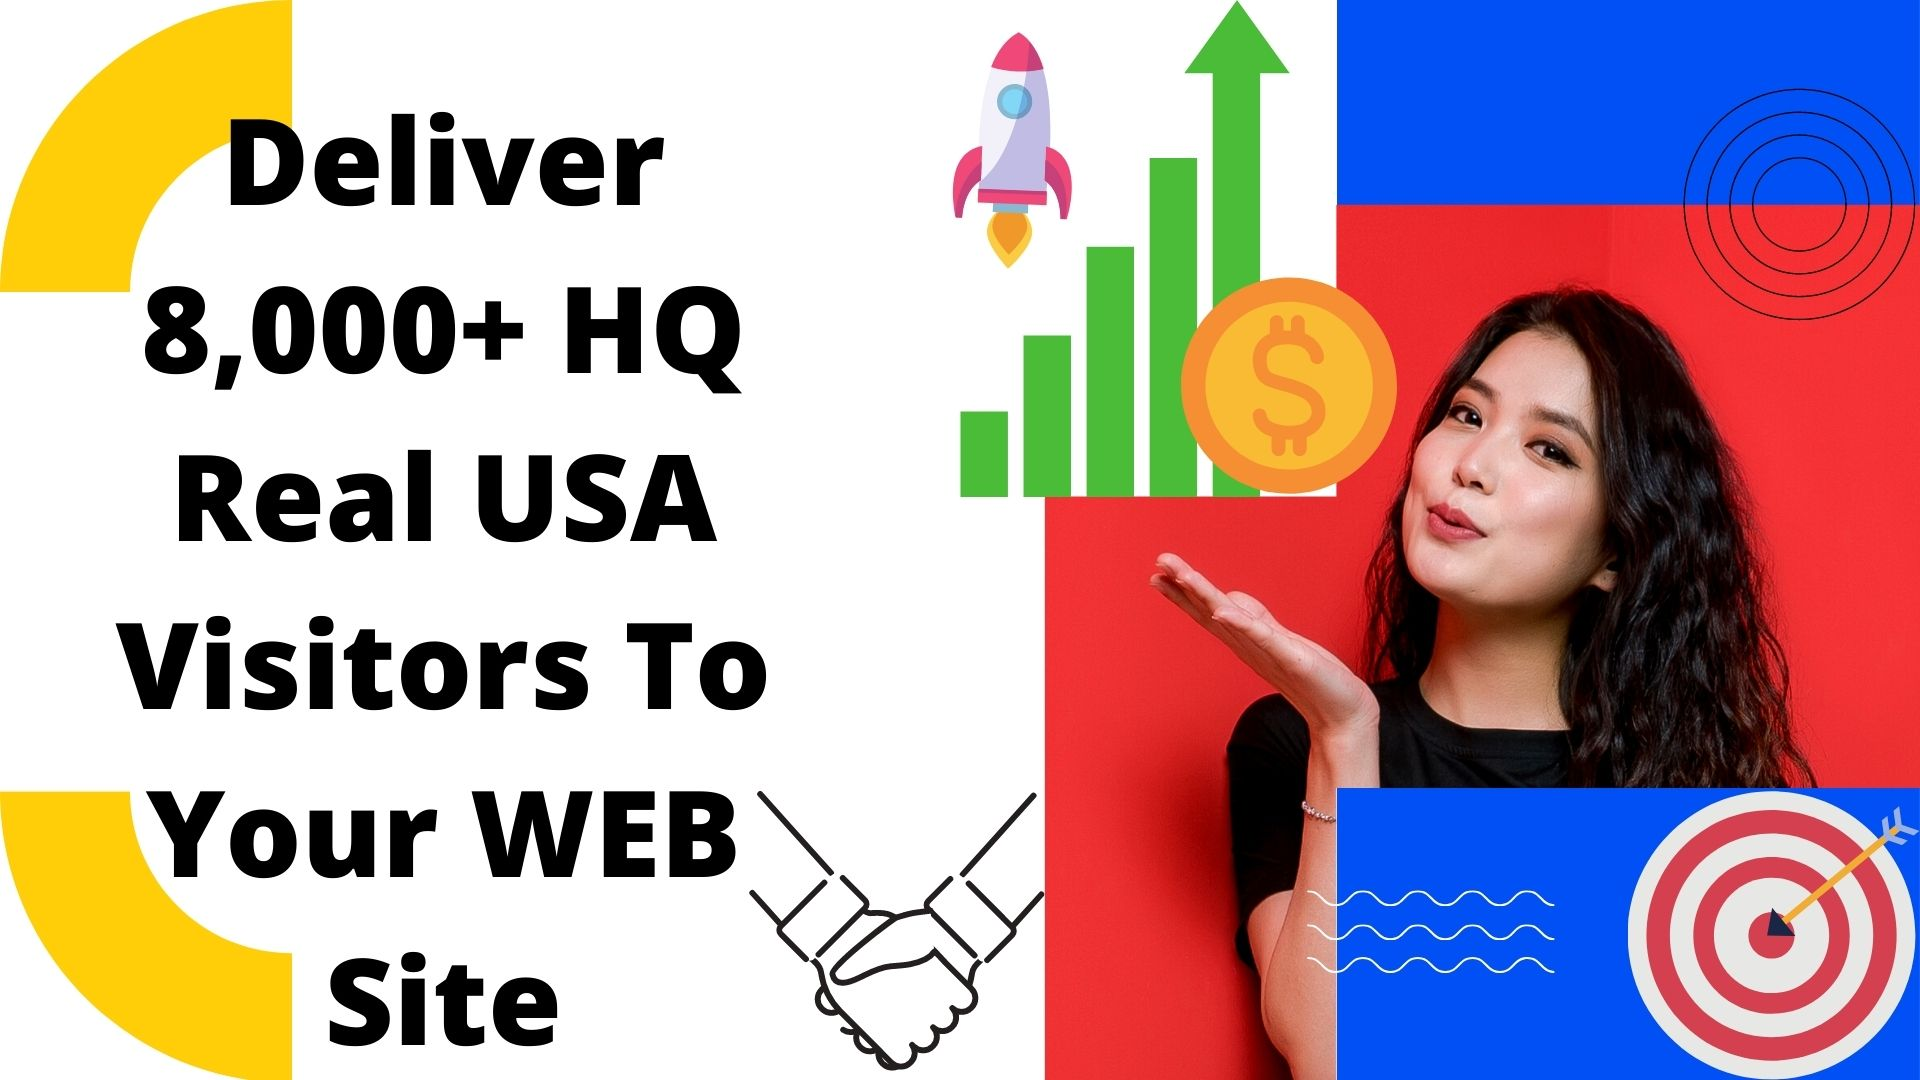 Deliver 8,000+ HQ Real USA Visitors To Your WEB Site